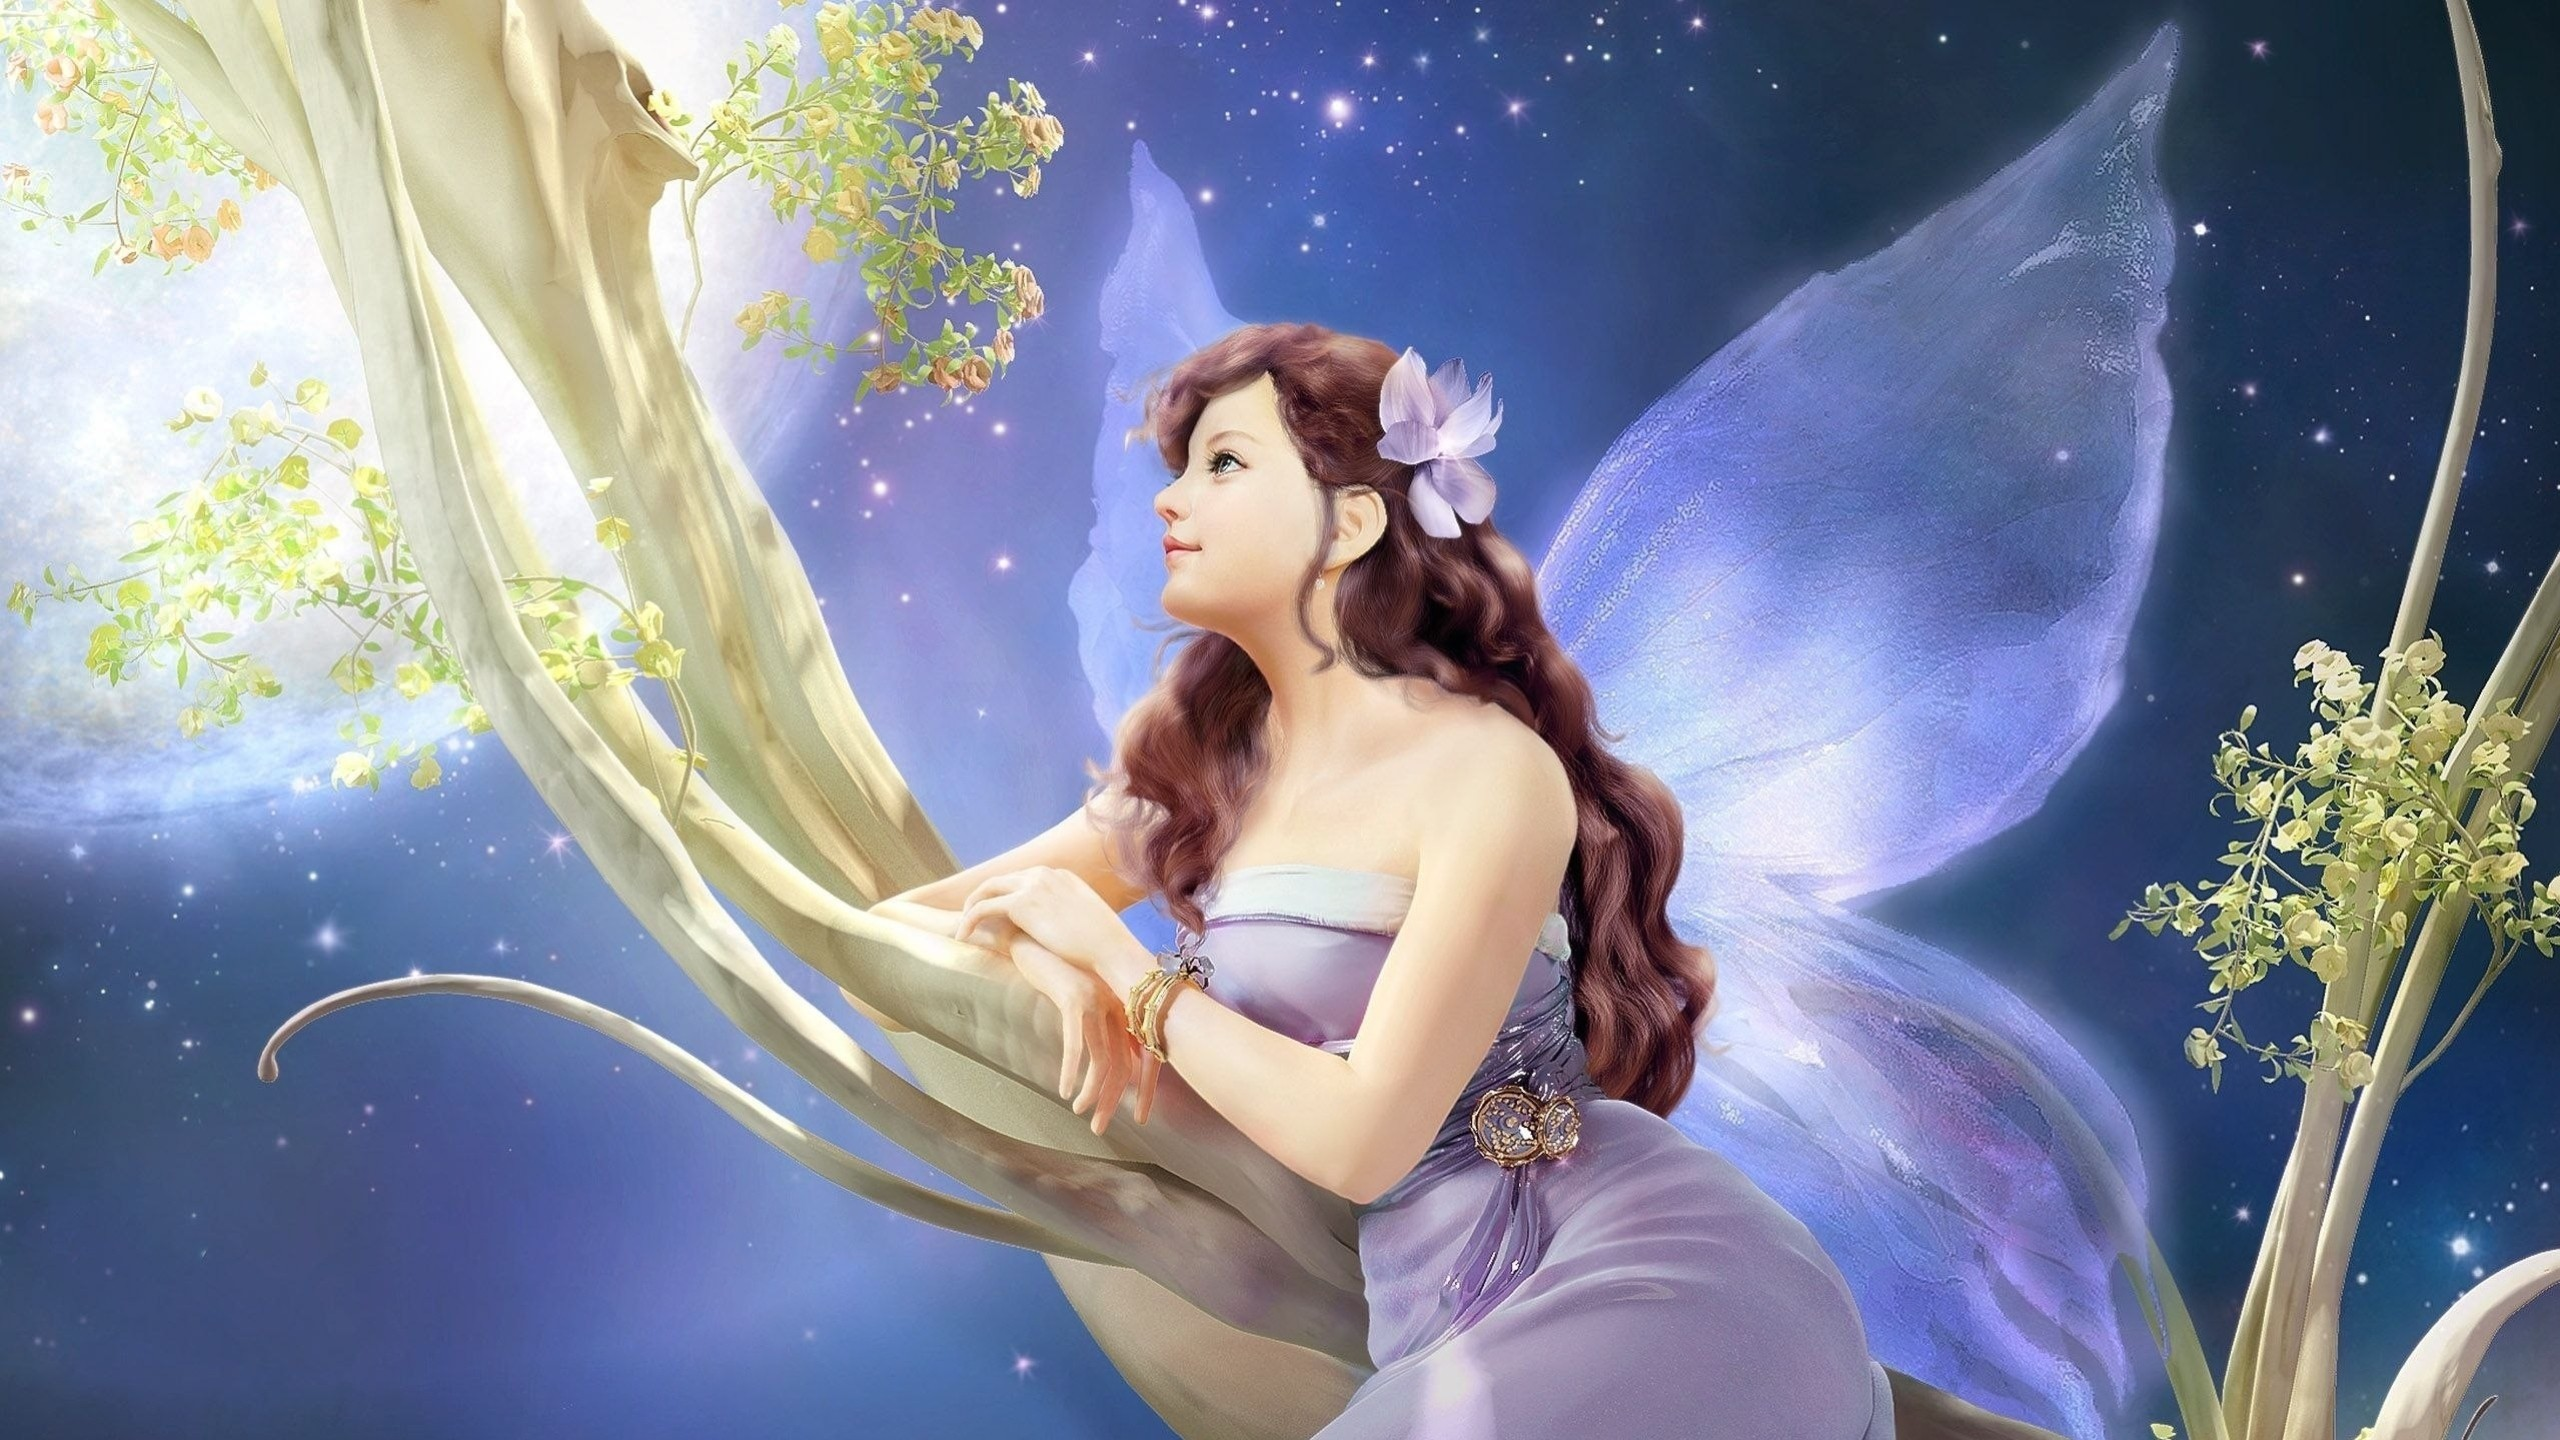 2560x1440 - Fairy Wallpapers 13